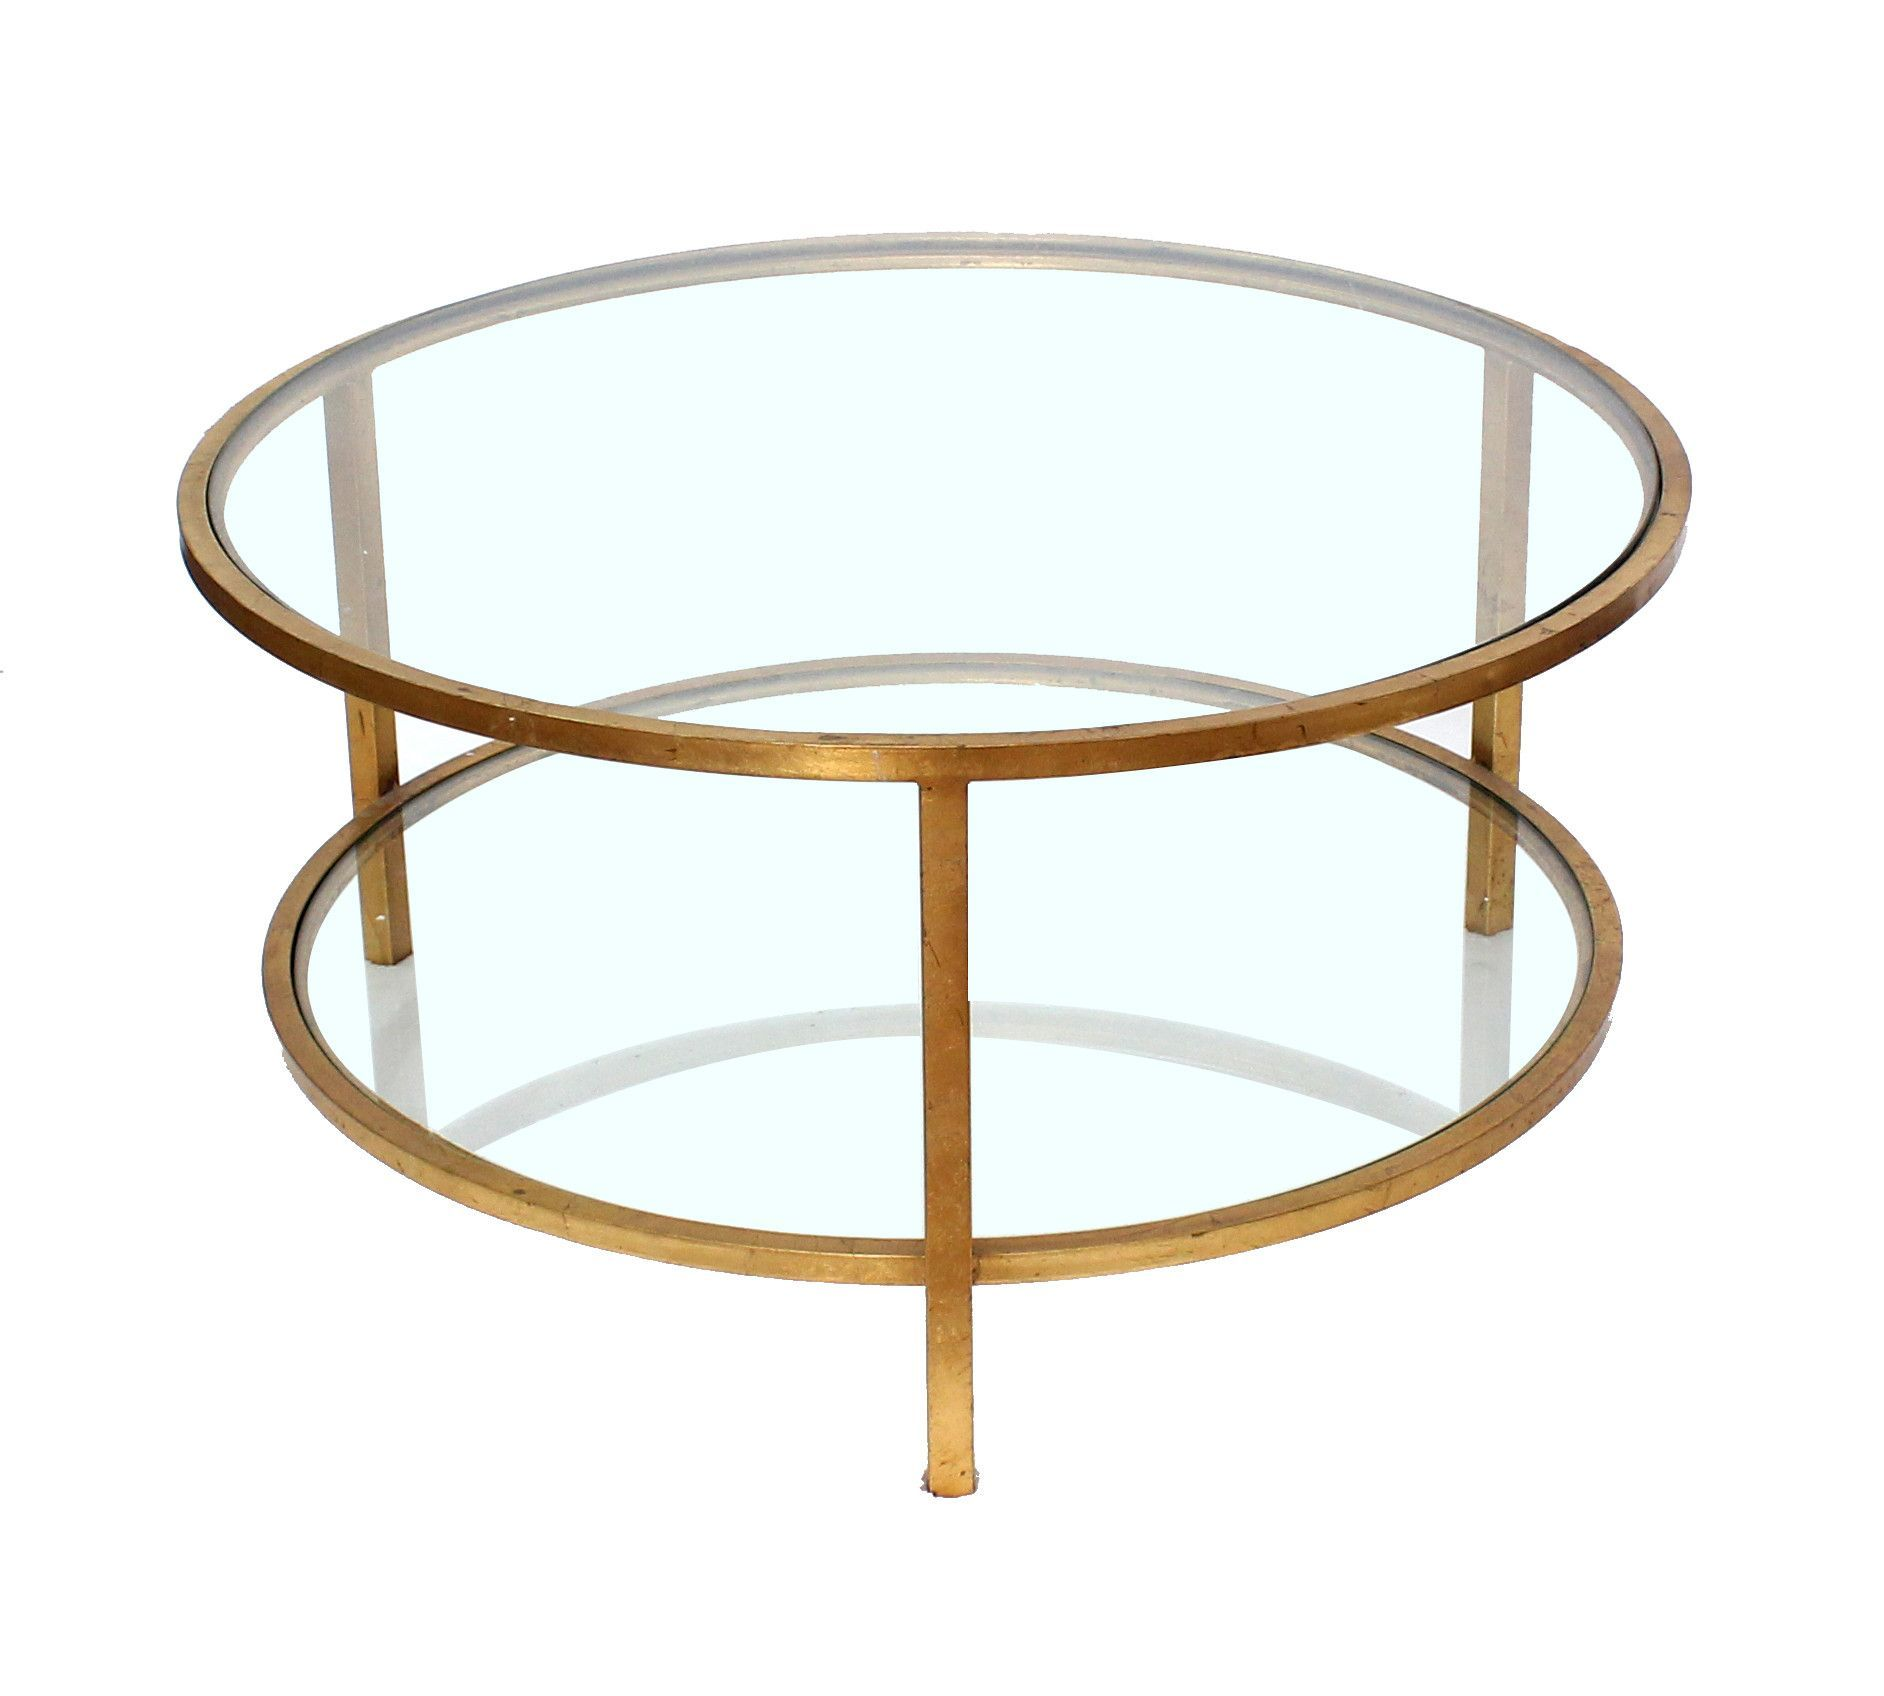 Screen Gems Double Layered Coffee Table Af 119 Round Metal Coffee Table Coffee Table Minimalist Coffee Table [ 1696 x 1884 Pixel ]